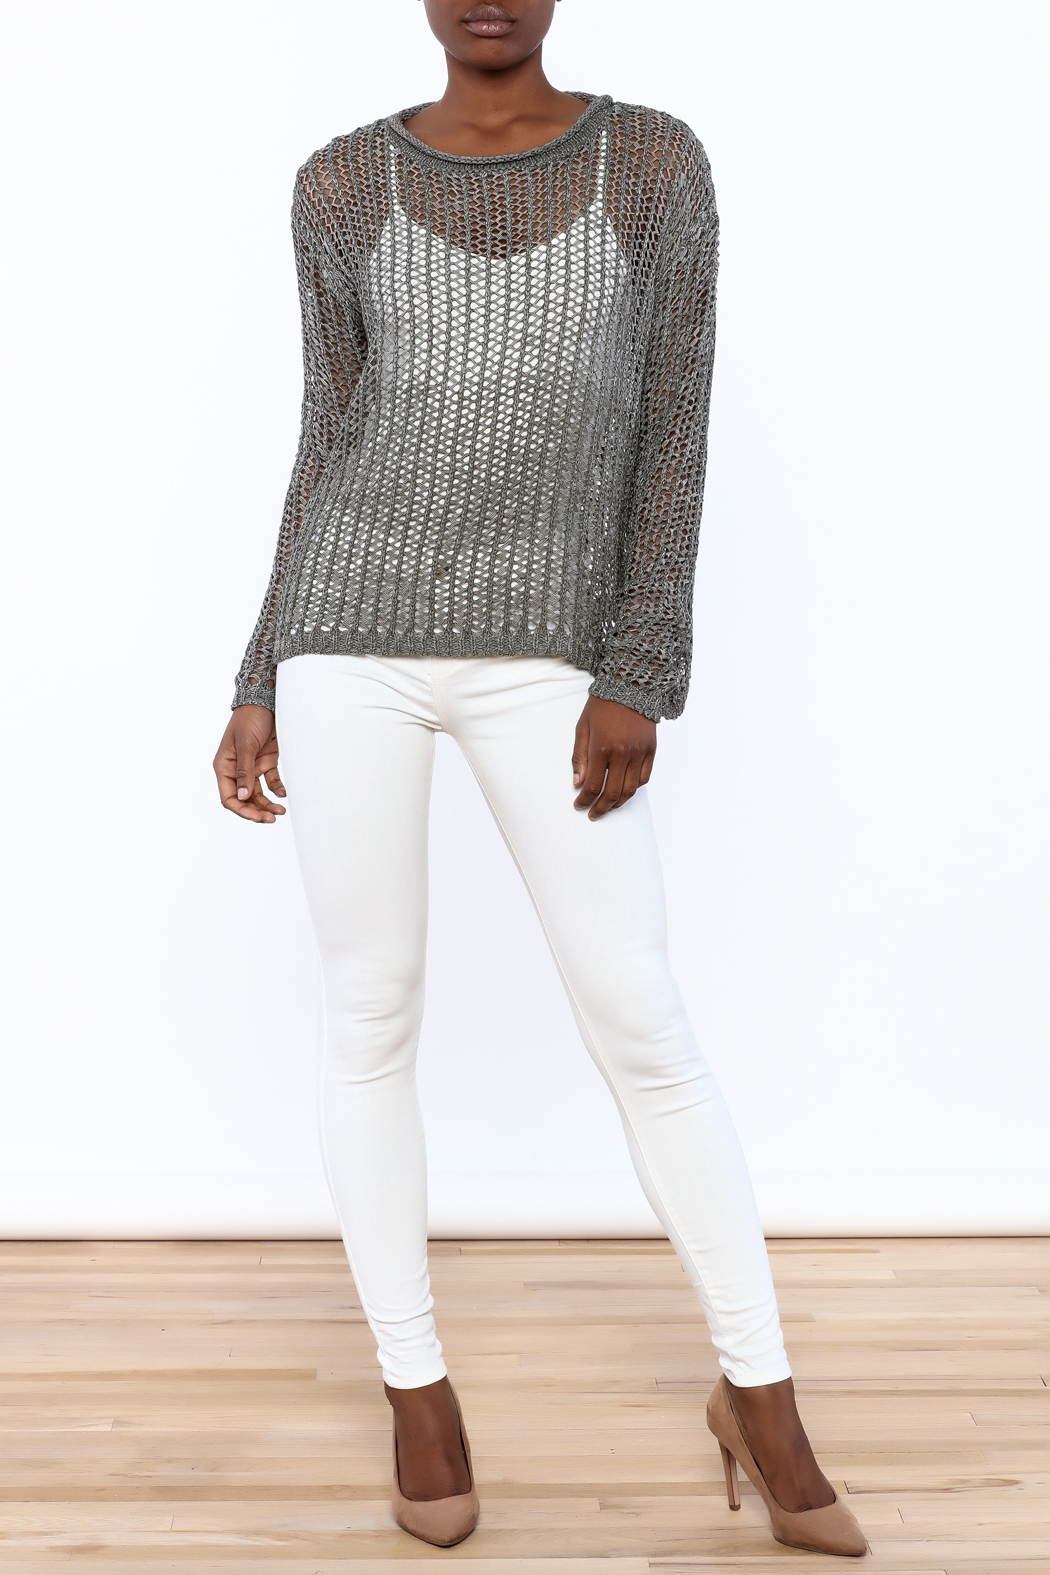 ec17b8ab29768 Elan Open Knit Sweater from New York by Dor L Dor — Shoptiques